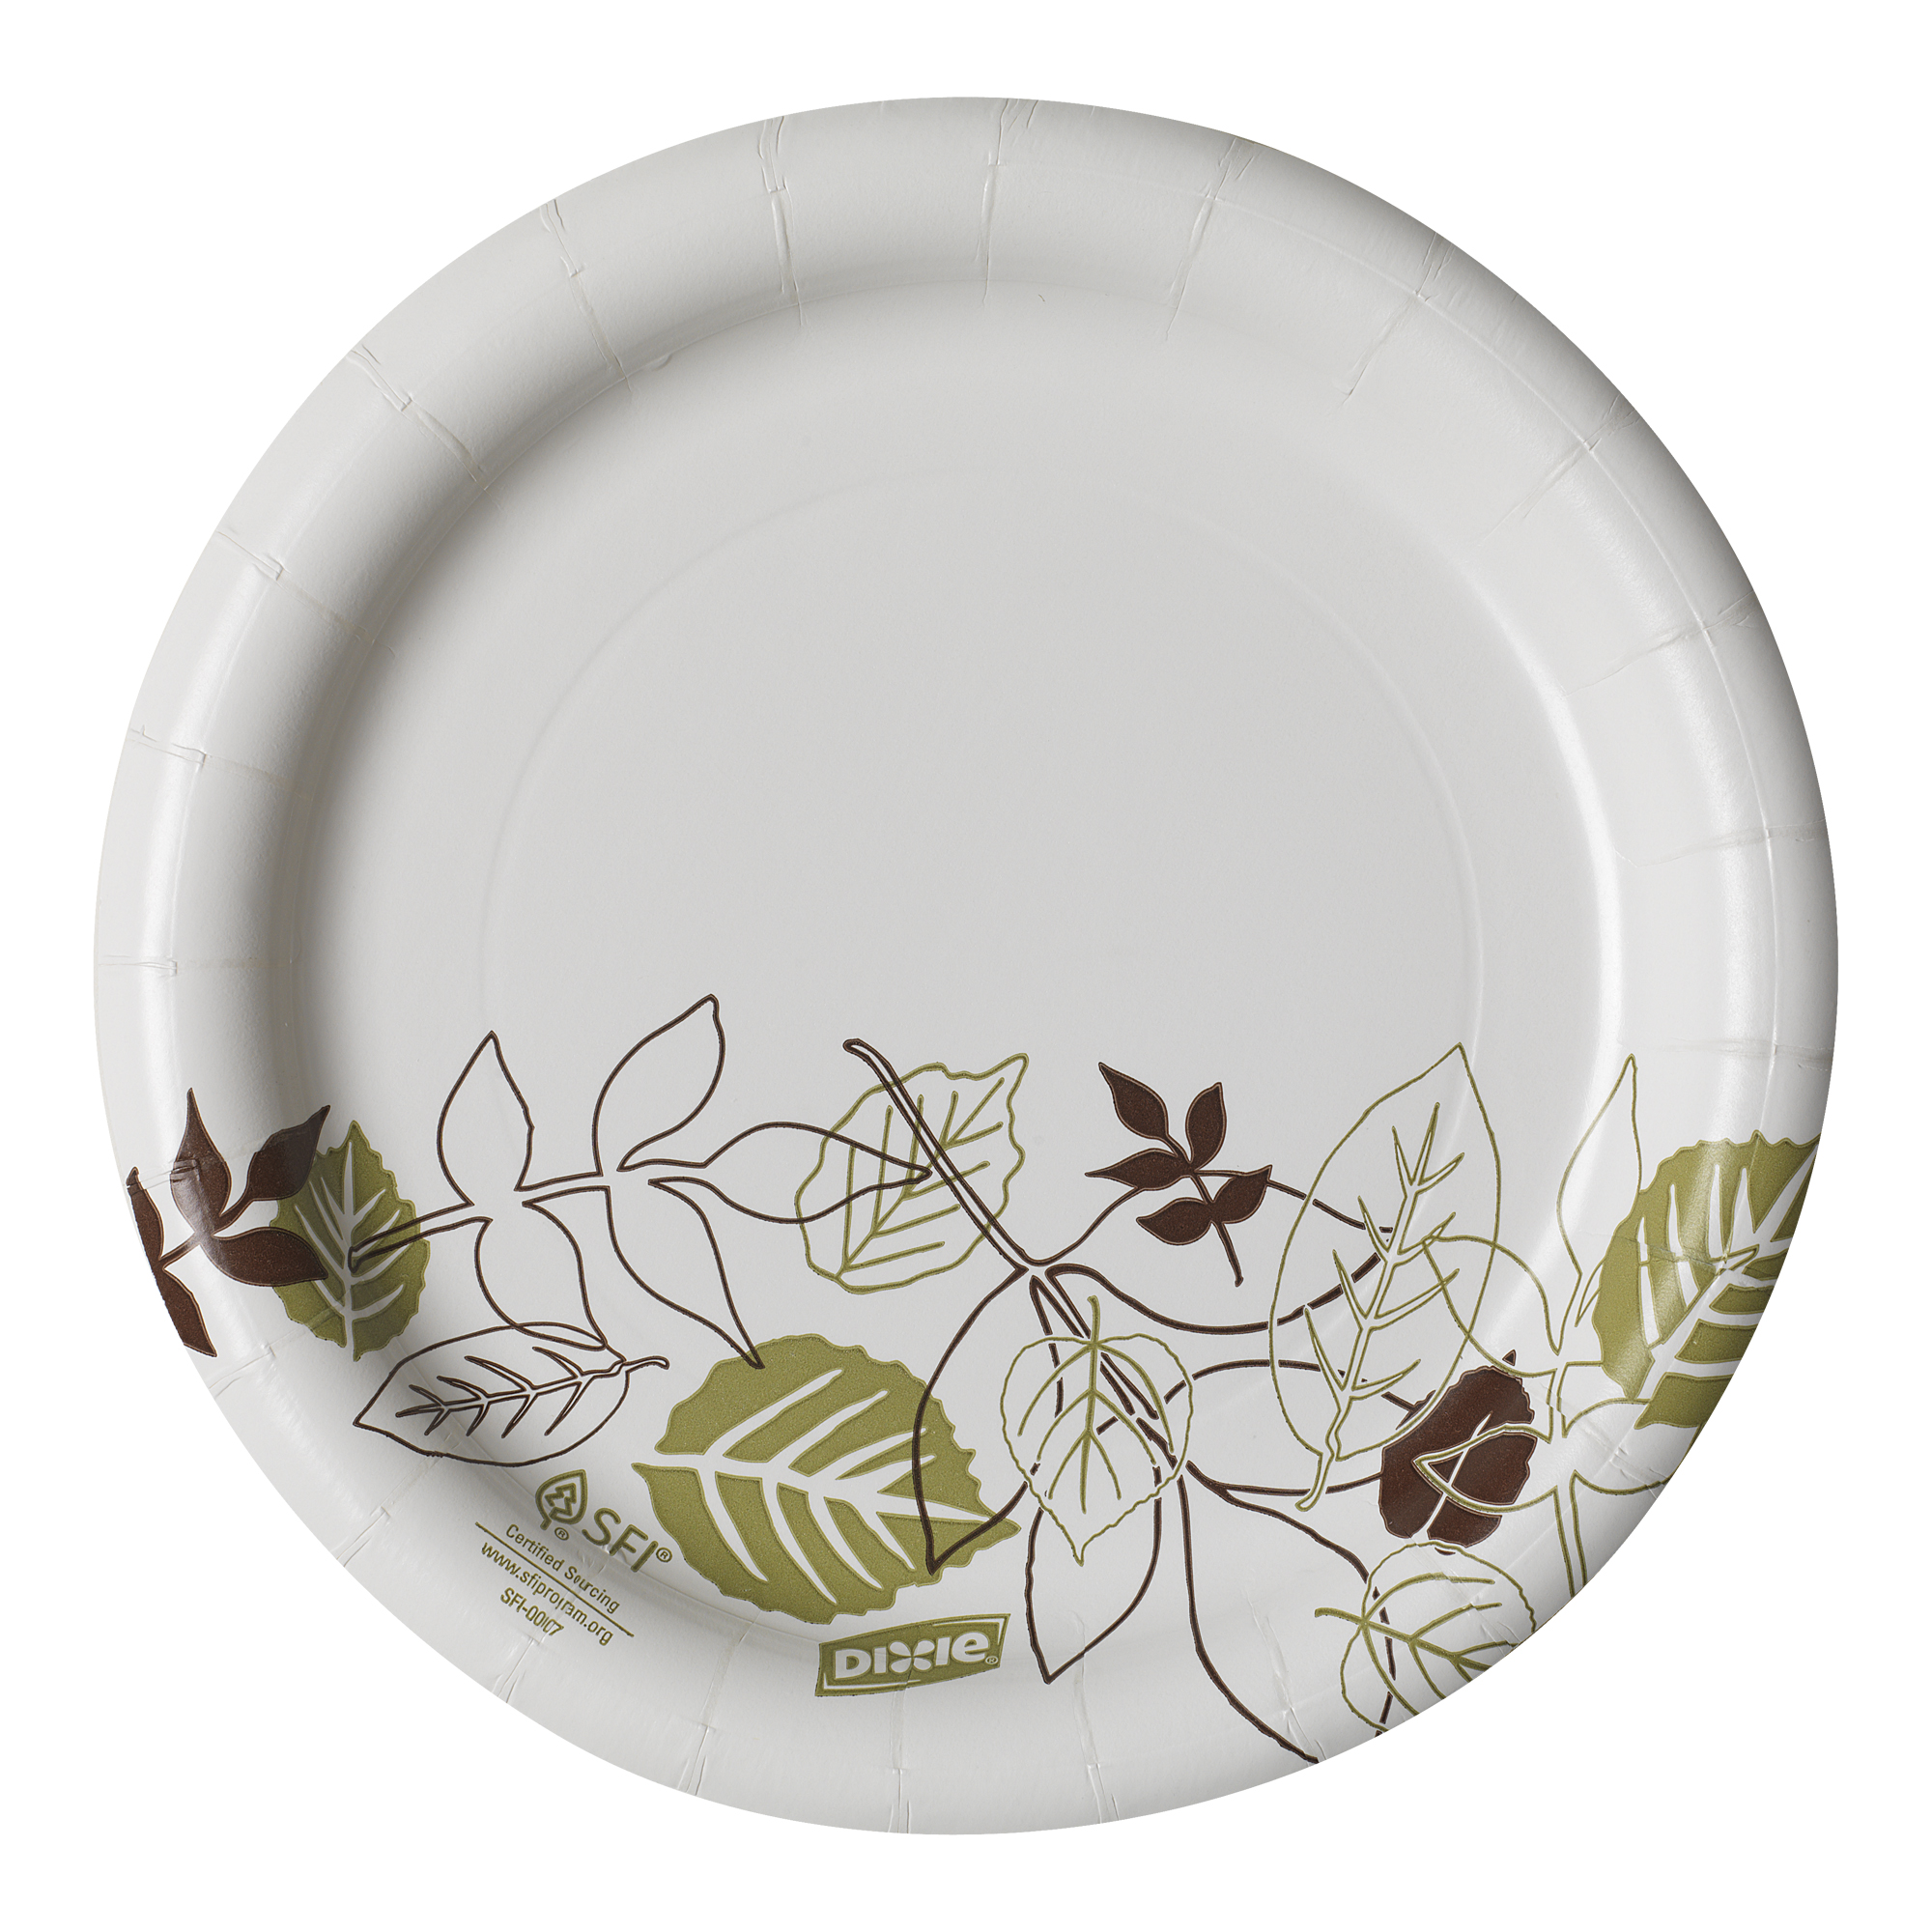 "Dixie® (UX7WS) Medium-Weight 7"" Paper Plate by Georgia-Pacific, Pathways®, 4 Packs of 125 Plates (500 Plates Total)"